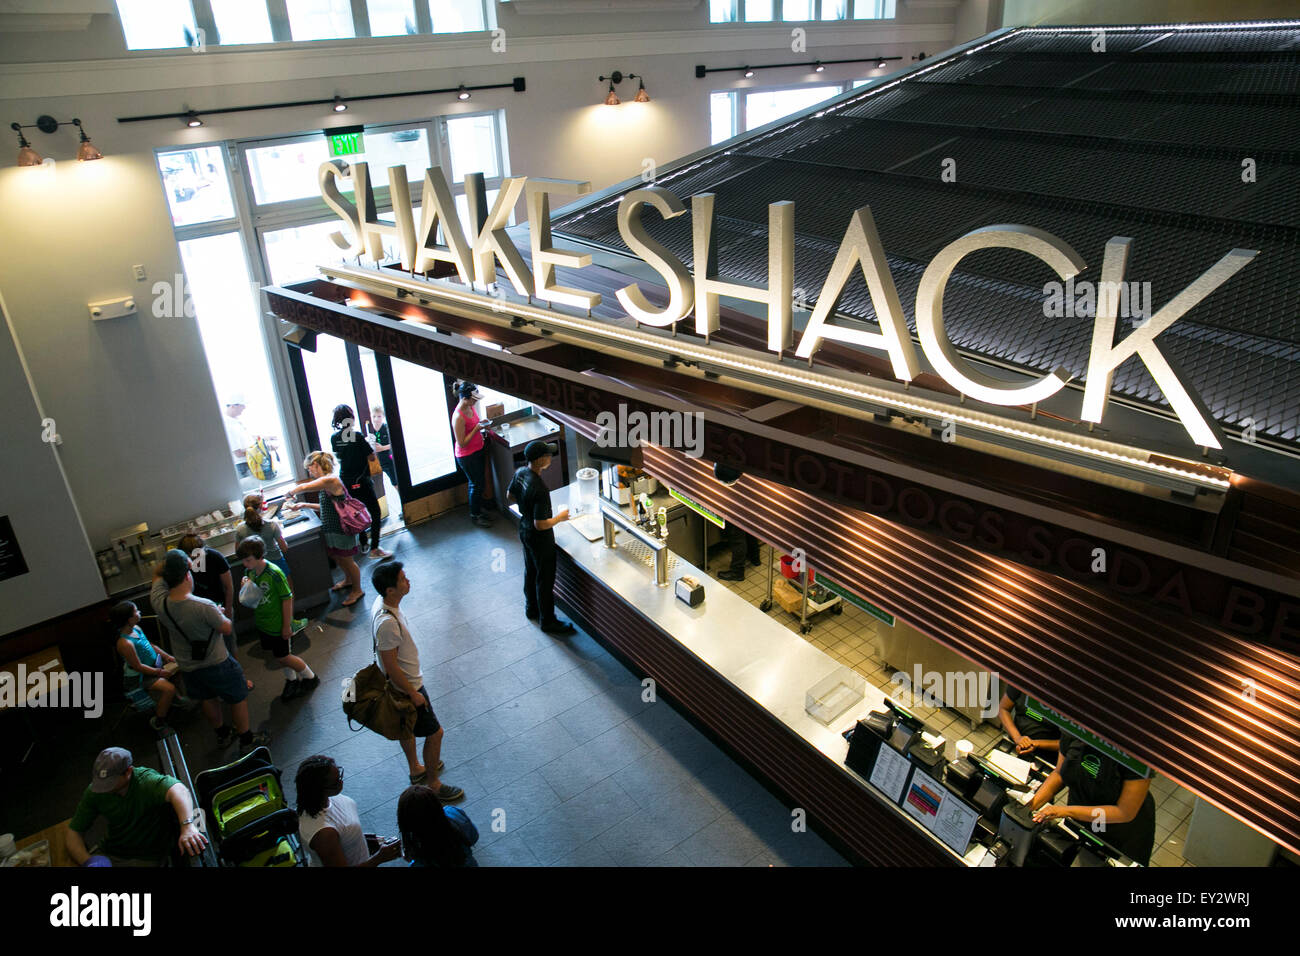 A Shake Shack Fast Casual Restaurant In Downtown Washington